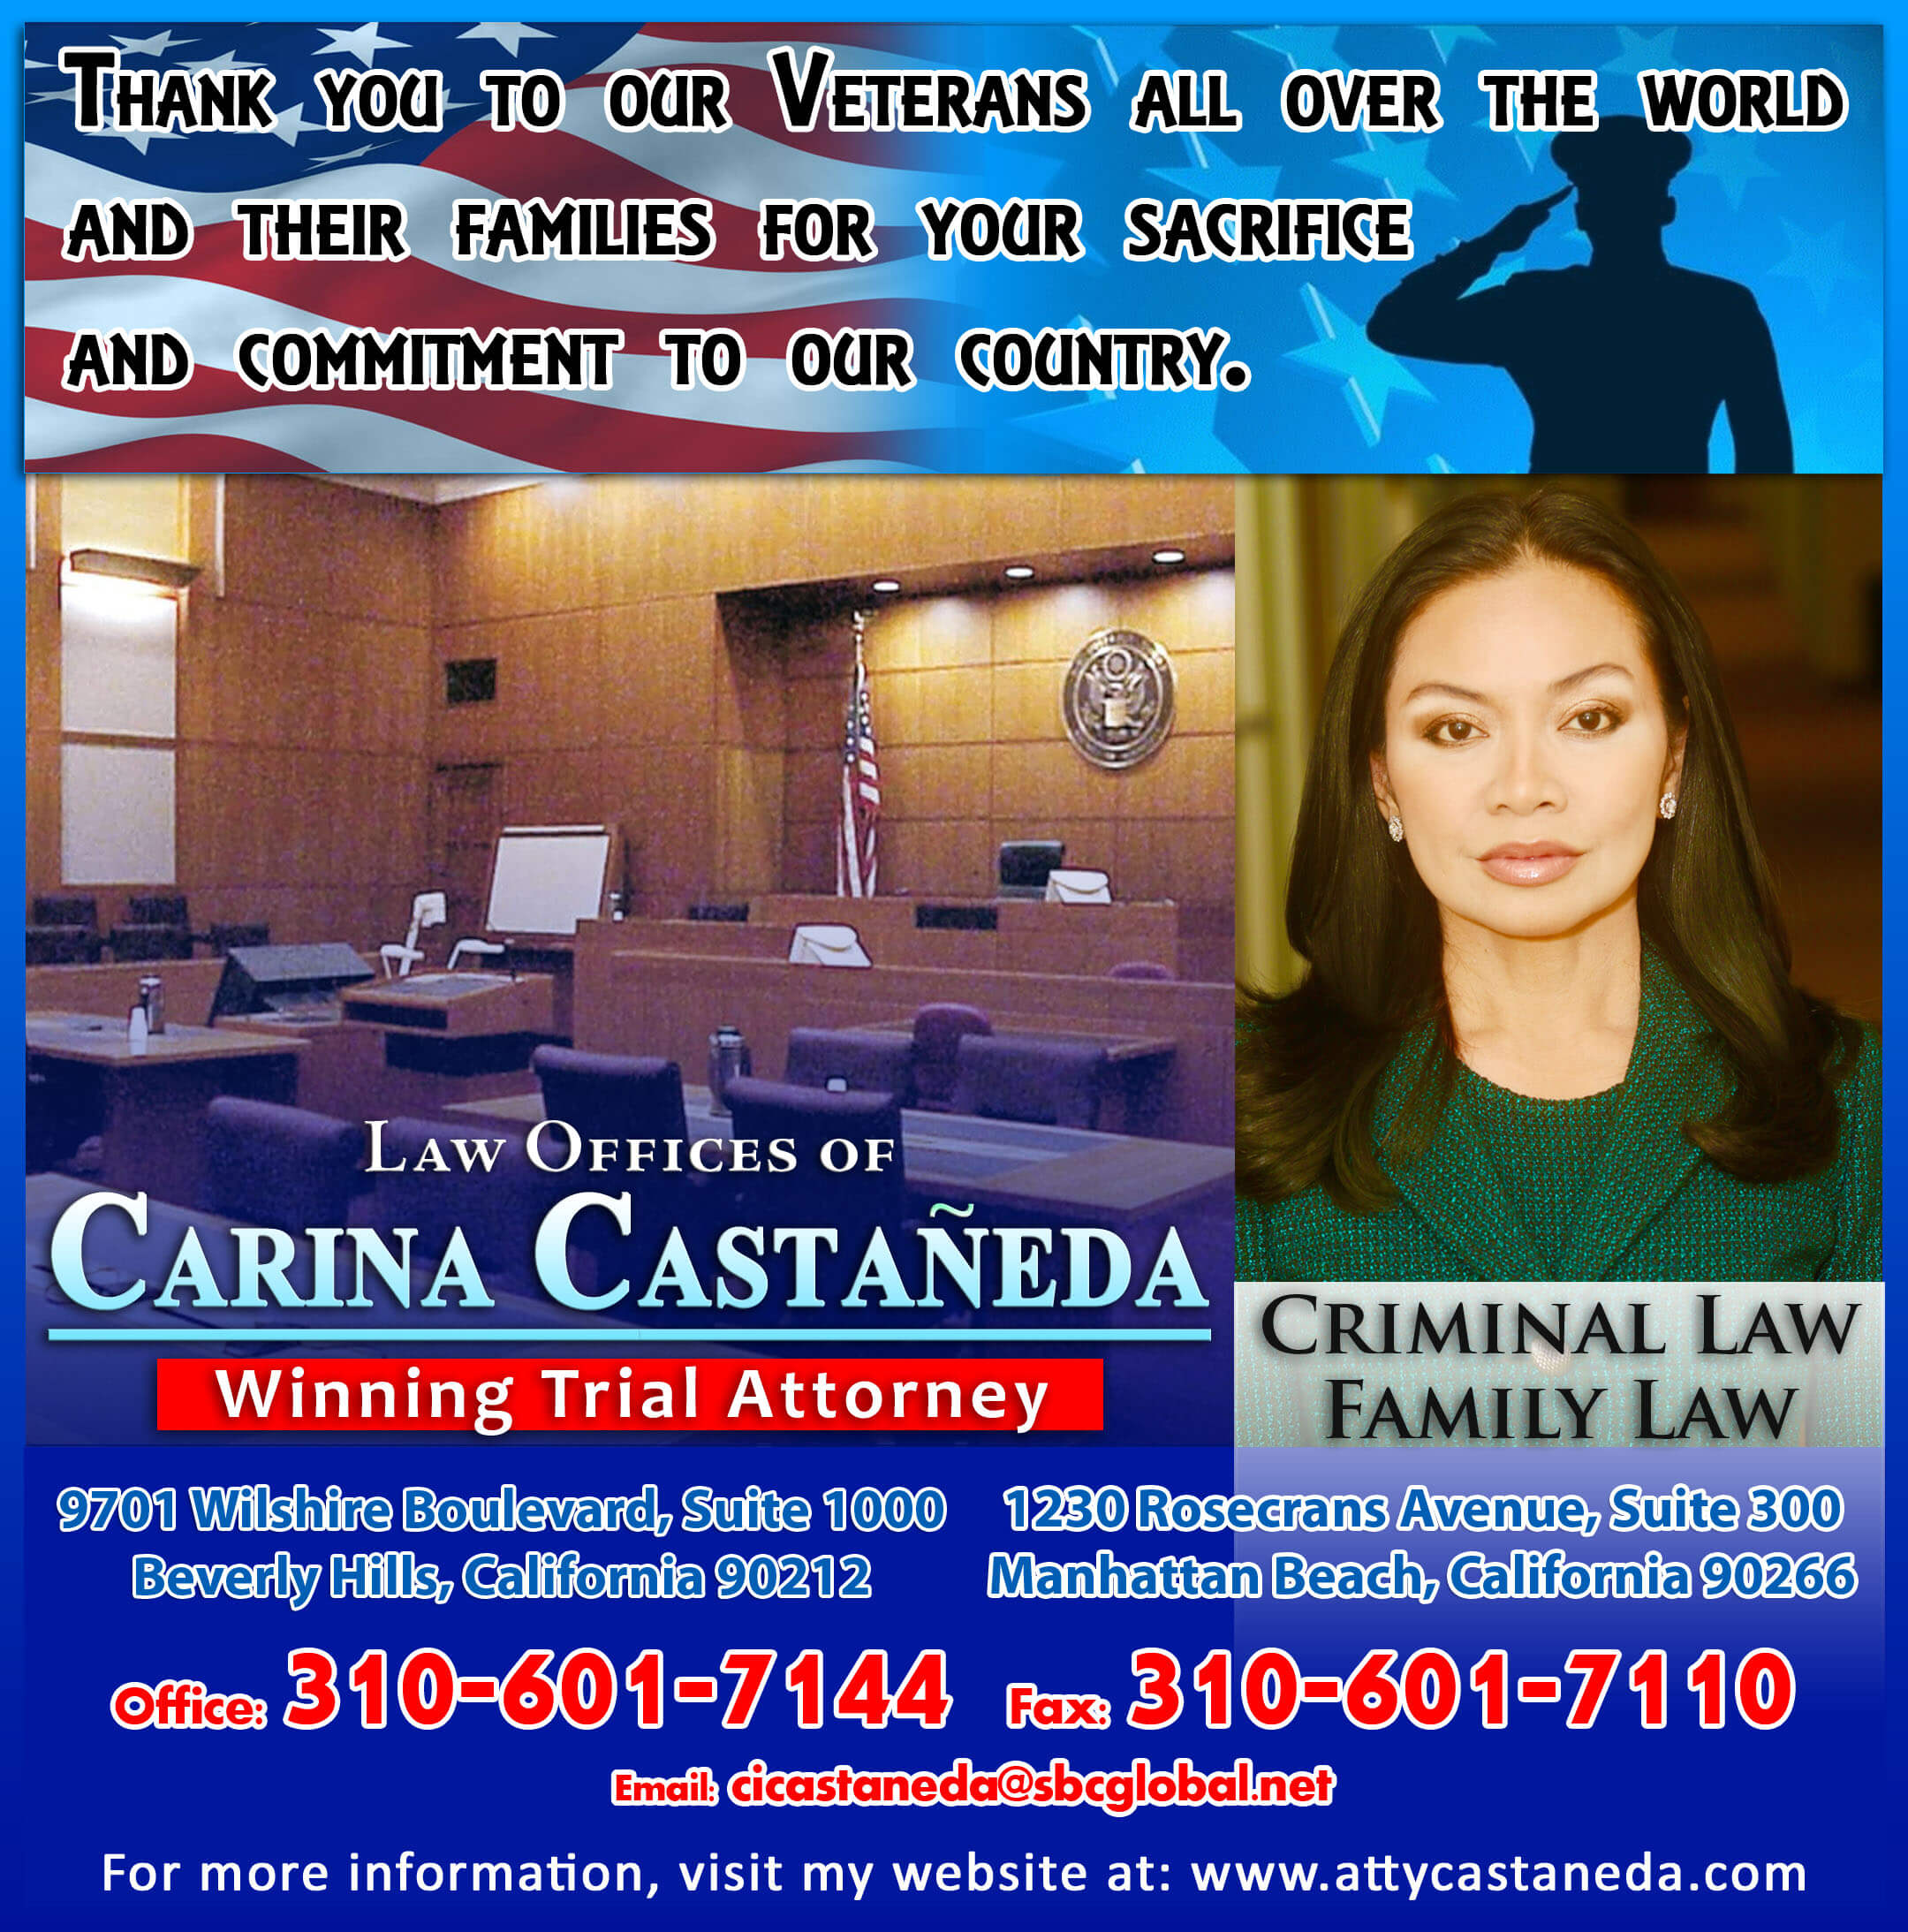 LAW OFFICE OF CARINA CASTANEDA - NEW AD FLAG